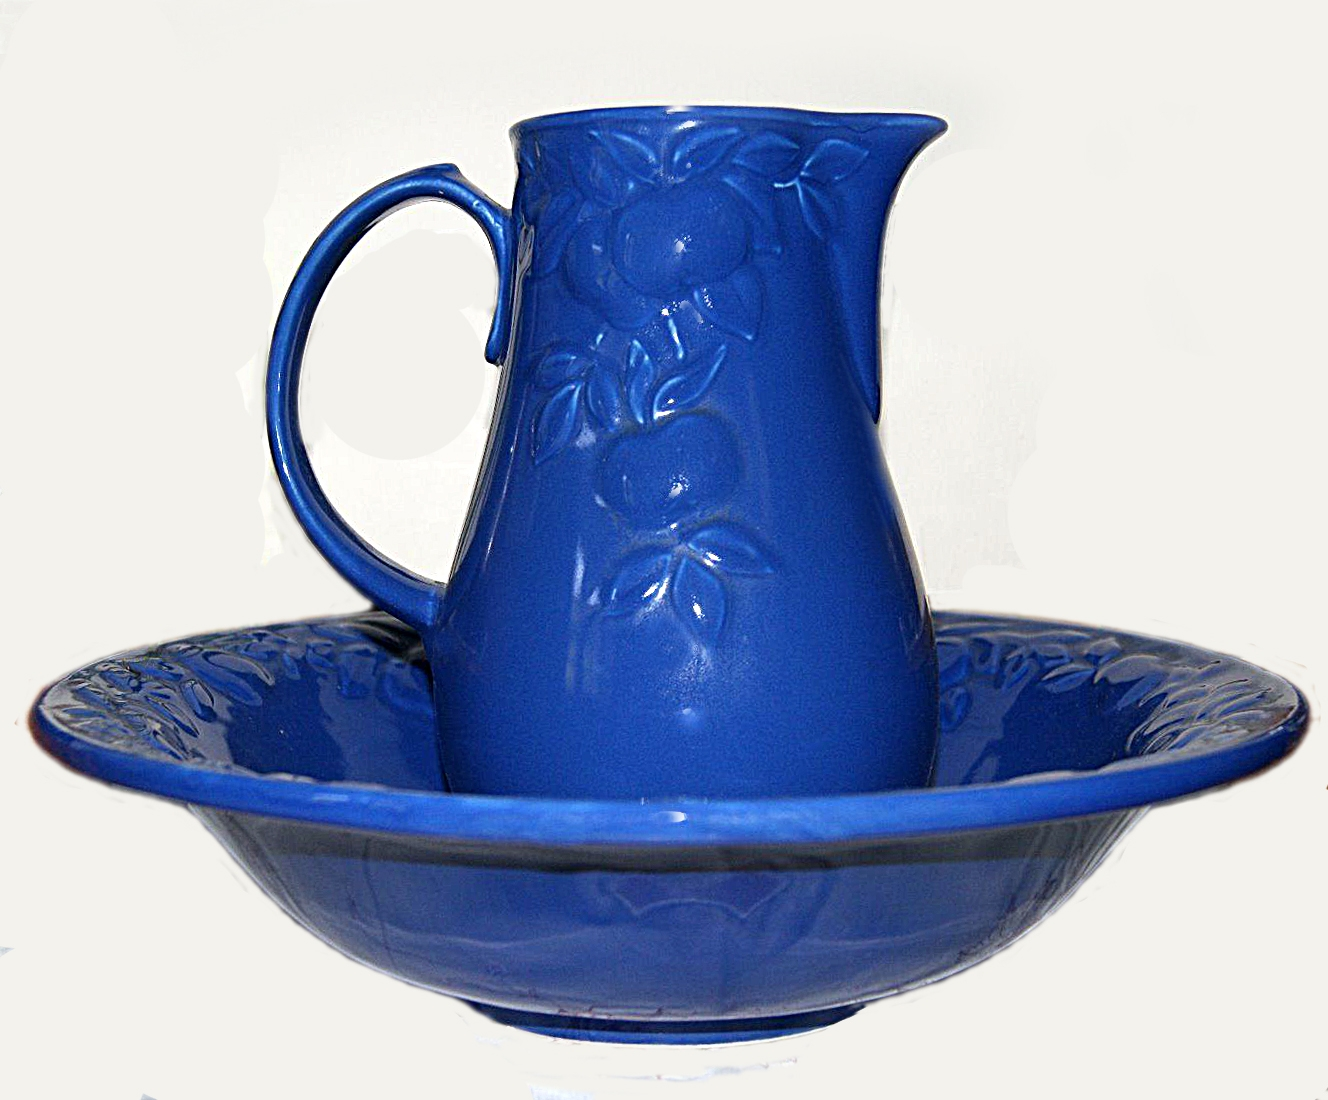 D813 Washbasin & Jug